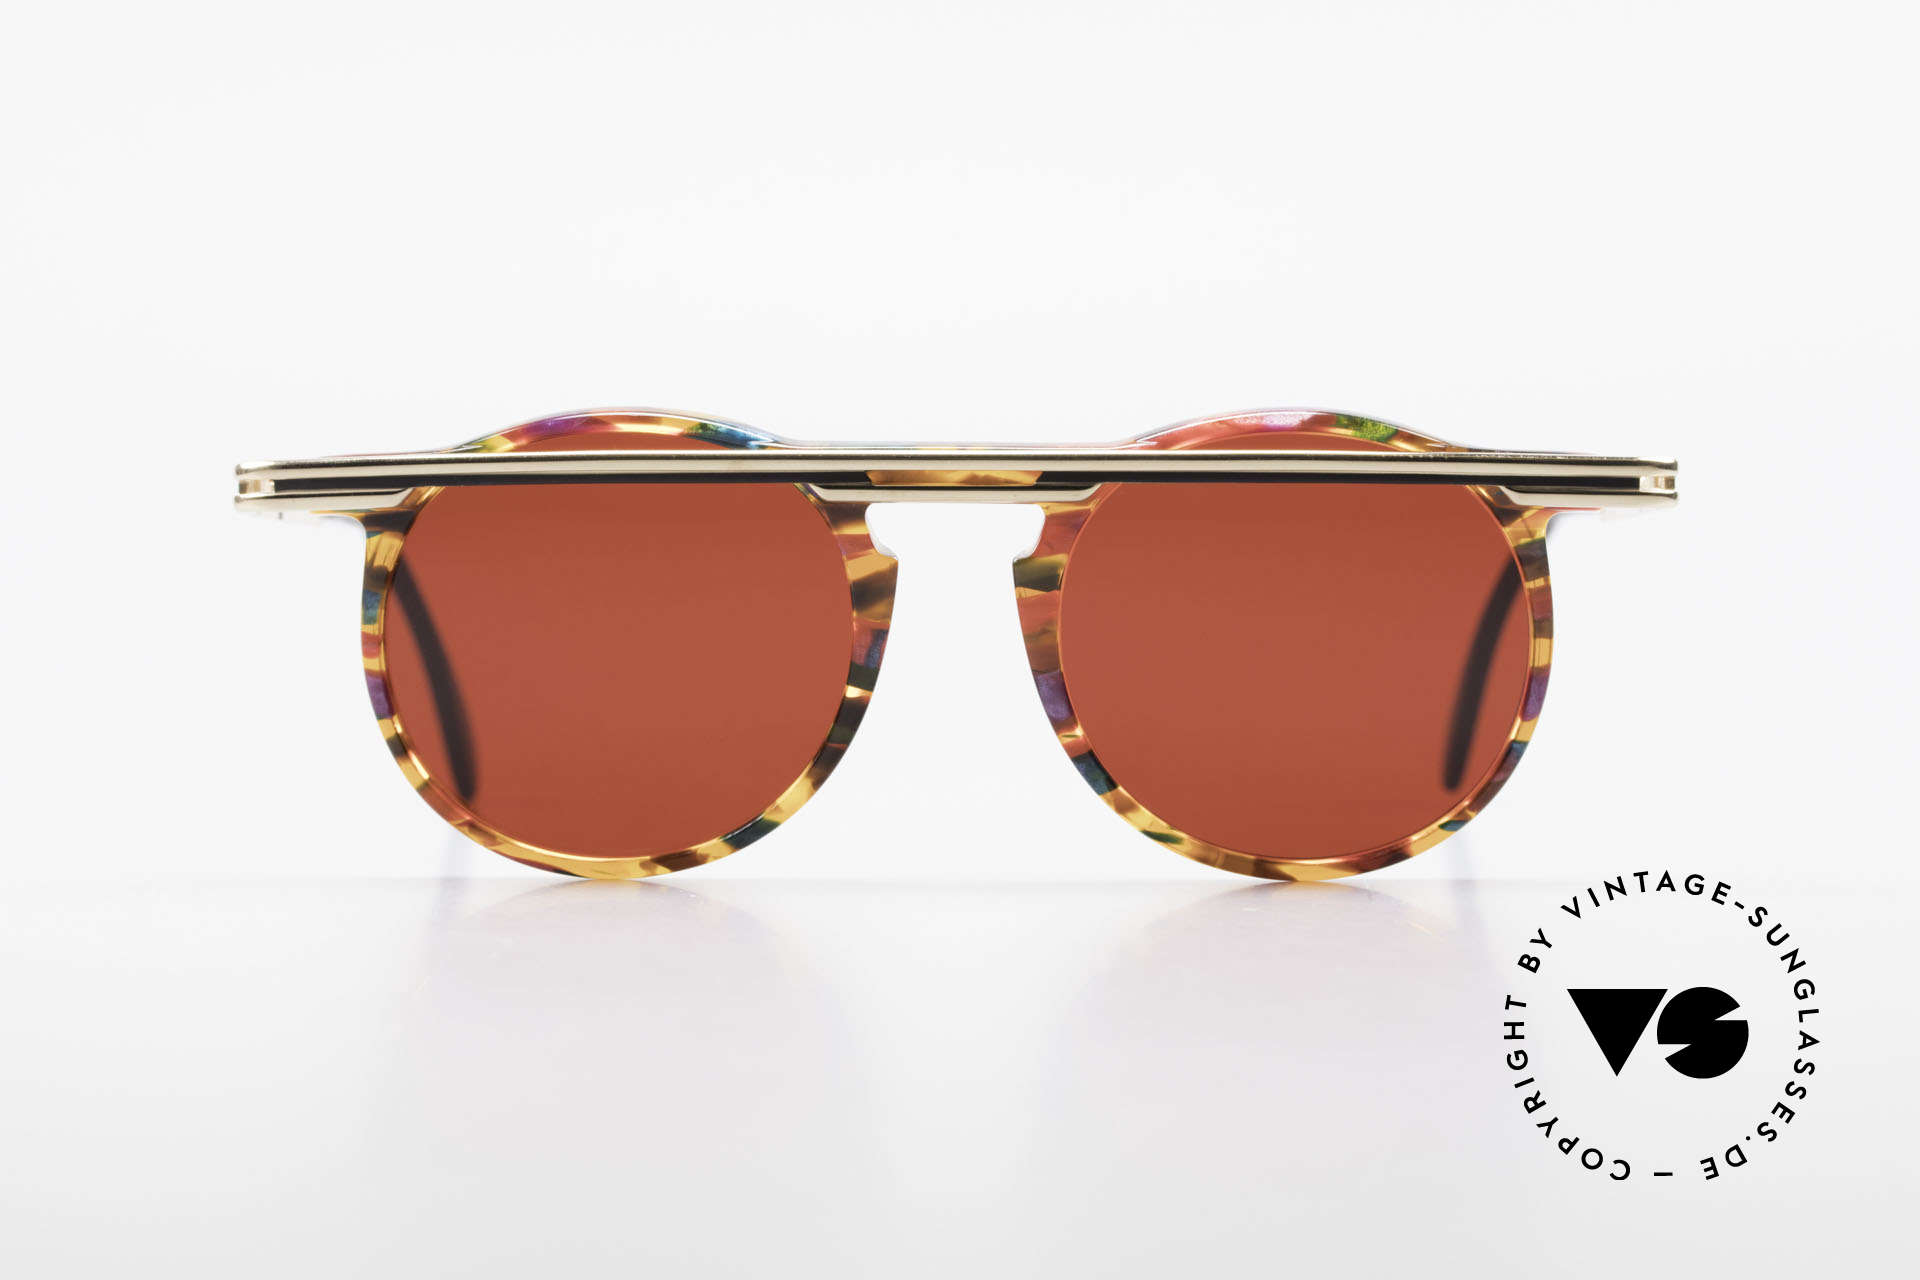 Cazal 648 Original Old Cazal Sunglasses, worn by the designer - Cari Zalloni (see the booklet), Made for Men and Women